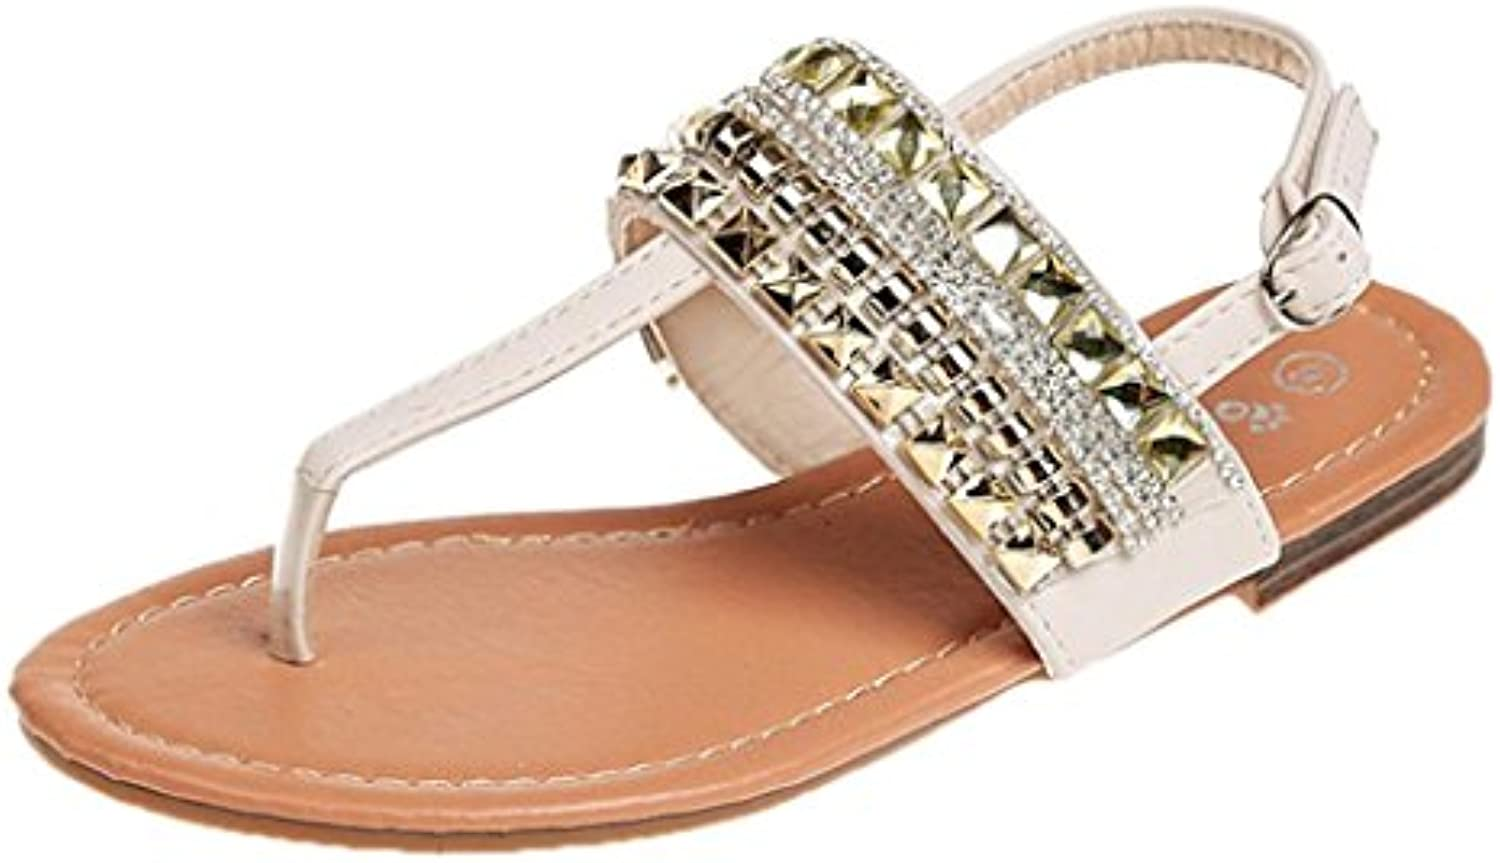 Women Women Women Summer Sandals,Brezeh Women's Summer Bohemia Beaded Sandals Clip Toe Flip Flop Sandals Casual Gladiator... 9313b5